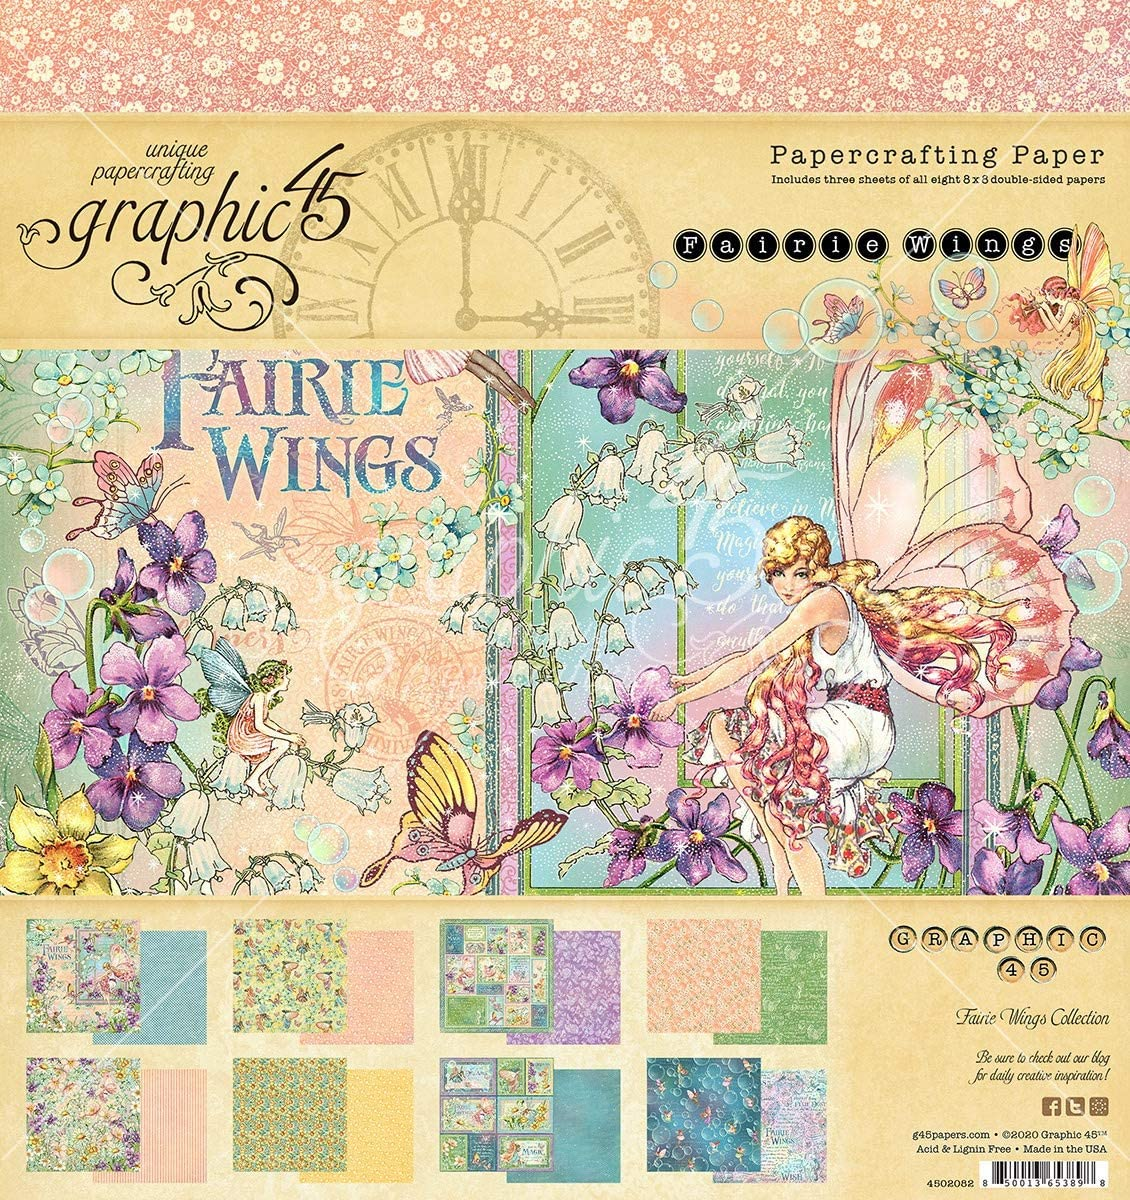 GRAPHIC 45 Fairie Wings Paper 8X8 PAD